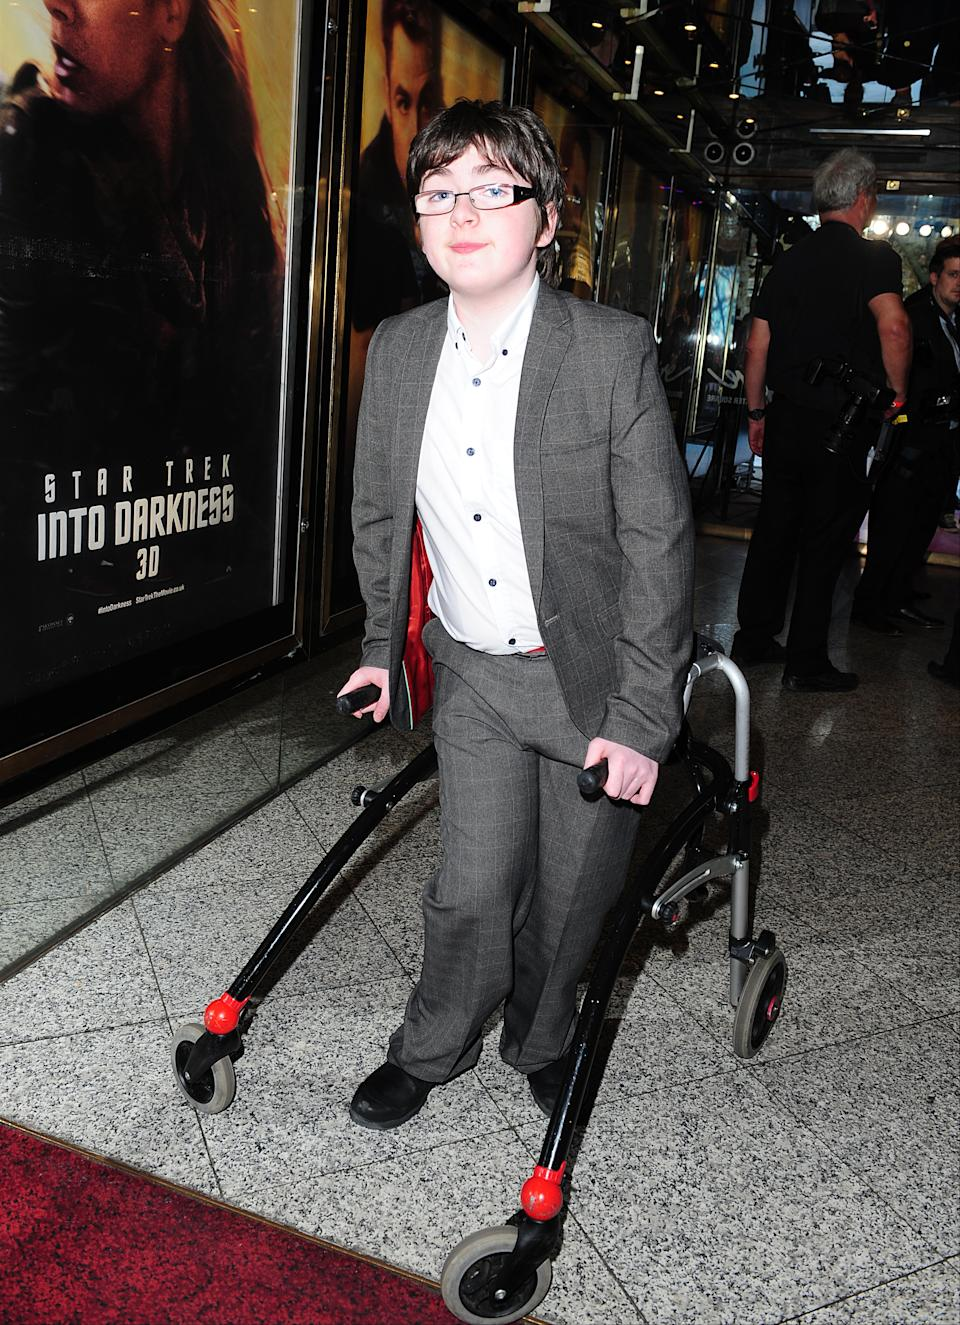 Britain's Got Talent contestant Jack Carroll arriving for the premiere of Star Trek Into Darkness at the Empire Leicester Square, London.   (Photo by Ian West/PA Images via Getty Images)